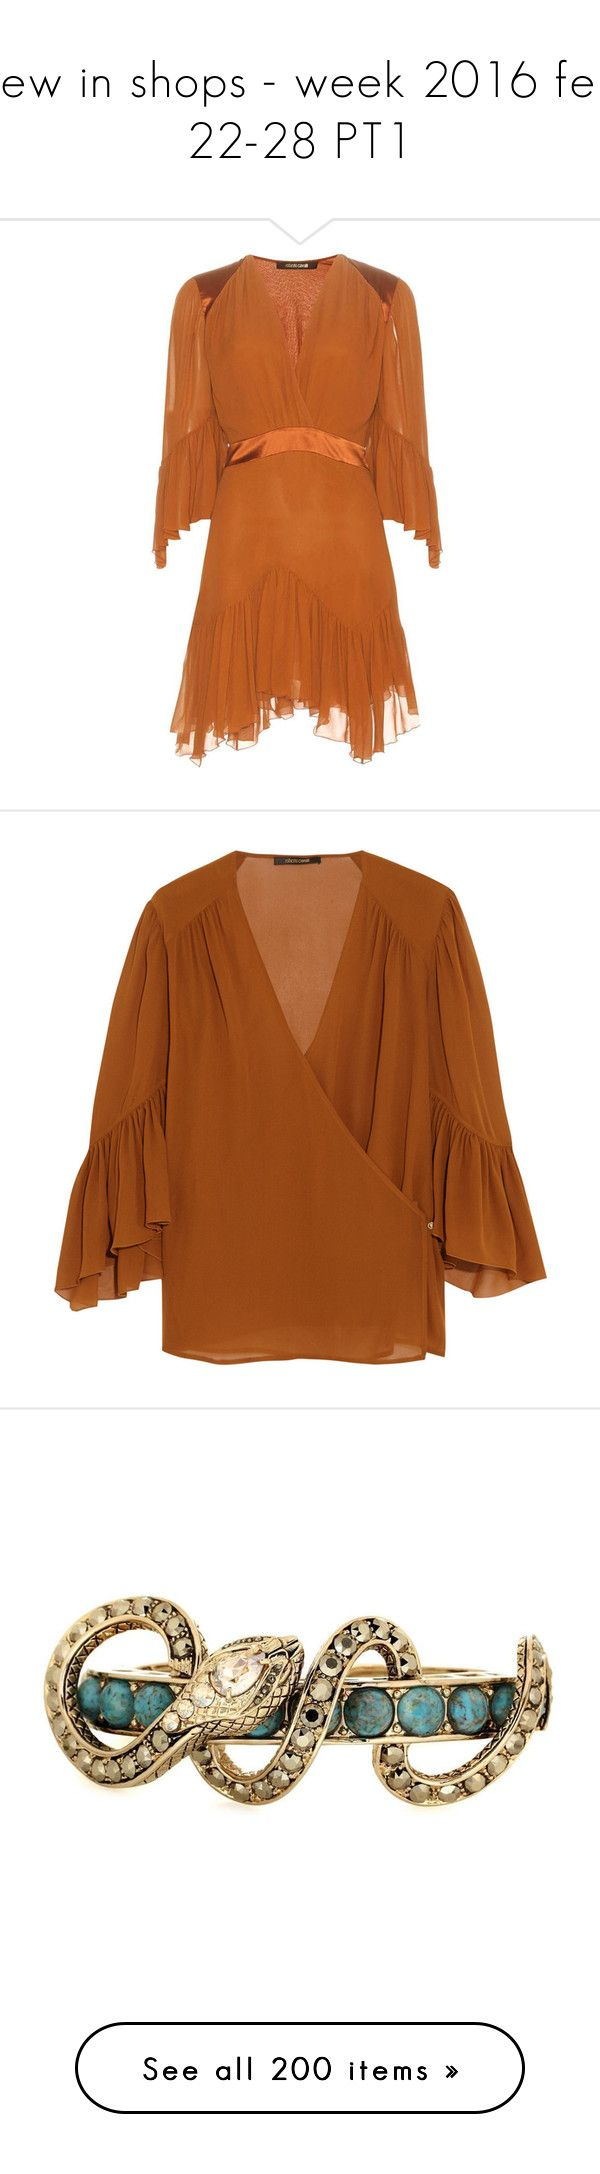 """""""new in shops - week 2016 feb 22-28 PT1"""" by aaliyah ❤ liked on Polyvore featuring dresses, brown, orange mini dress, mini dress, brown dress, silk chiffon dress, short dresses, tops, blouses and shirts"""